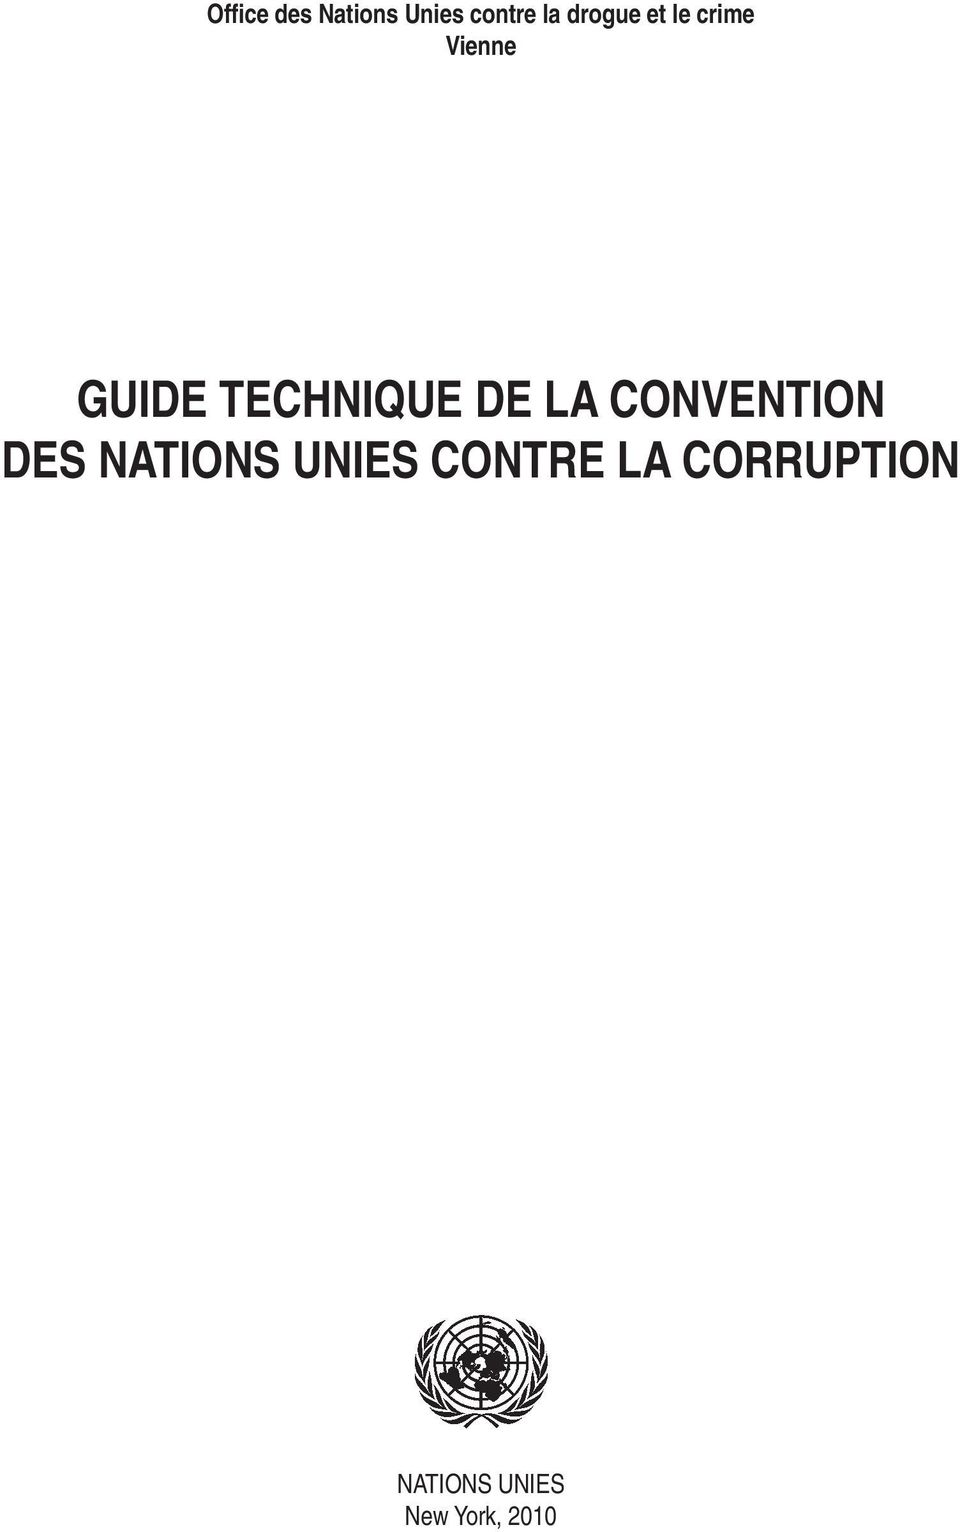 TECHNIQUE DE LA CONVENTION DES NATIONS